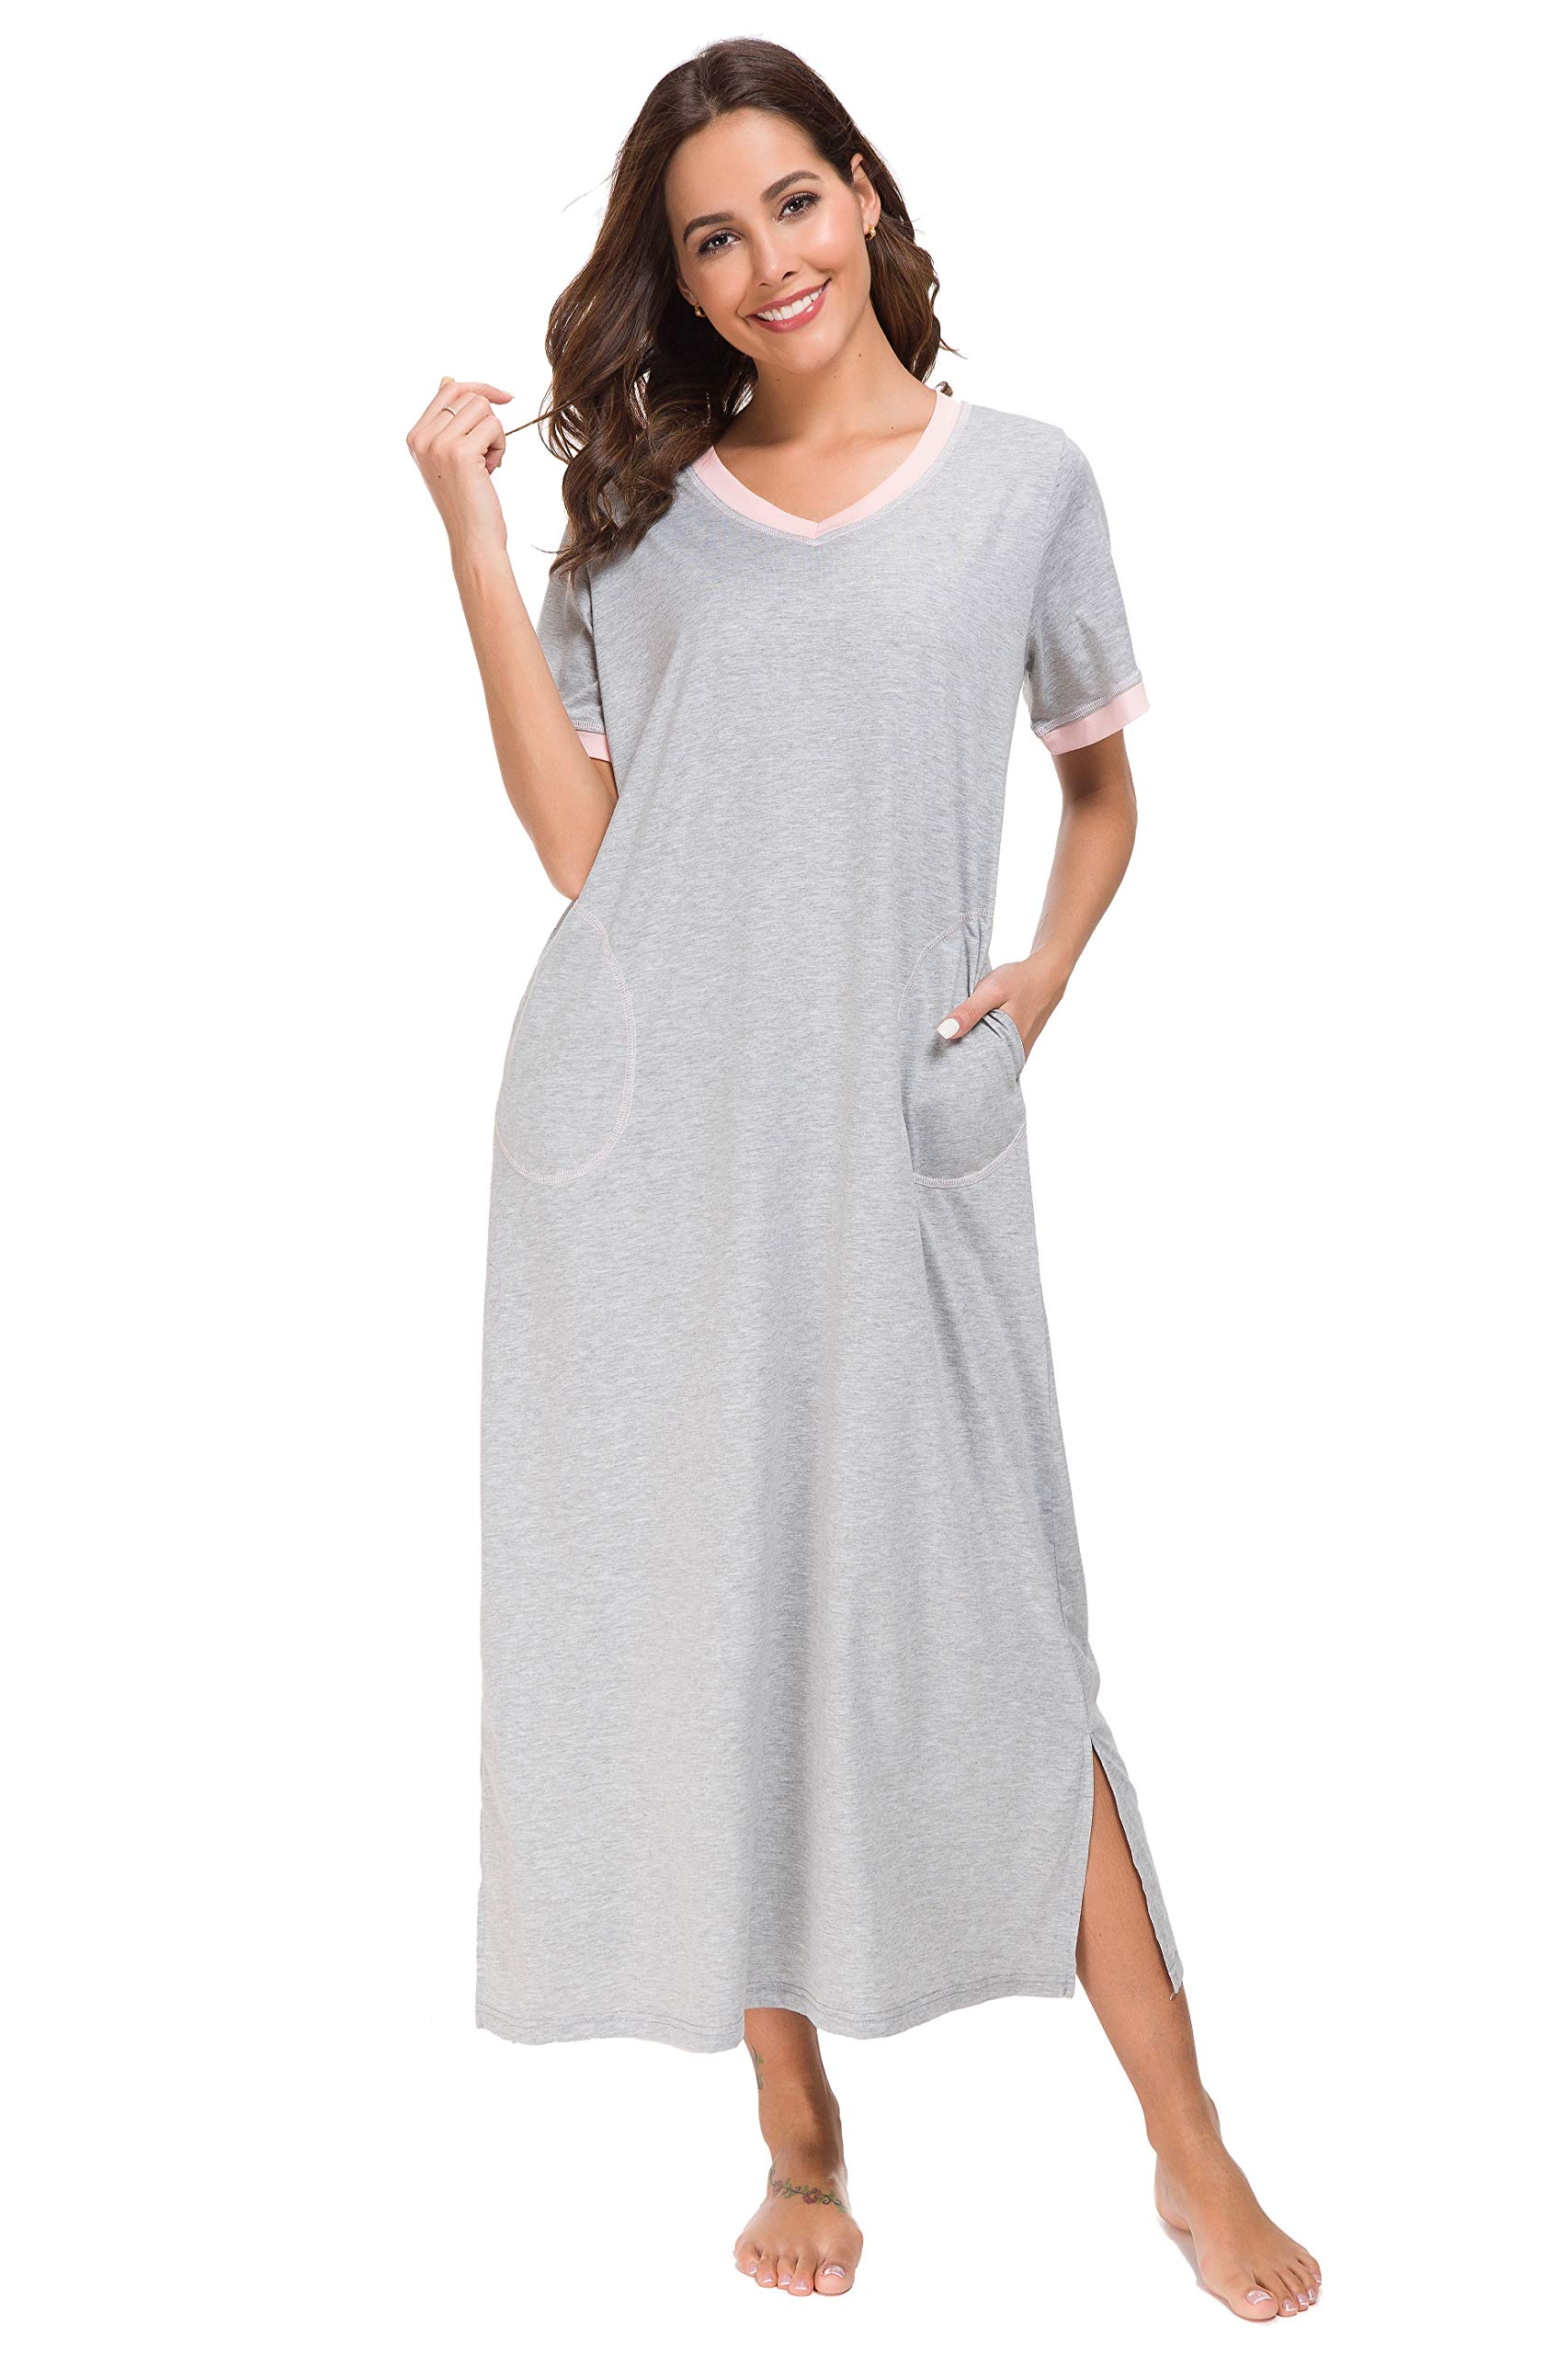 YOZLY Long Nightgown Womens House Dresses Cotton Loungewear V Neck Sleepwear